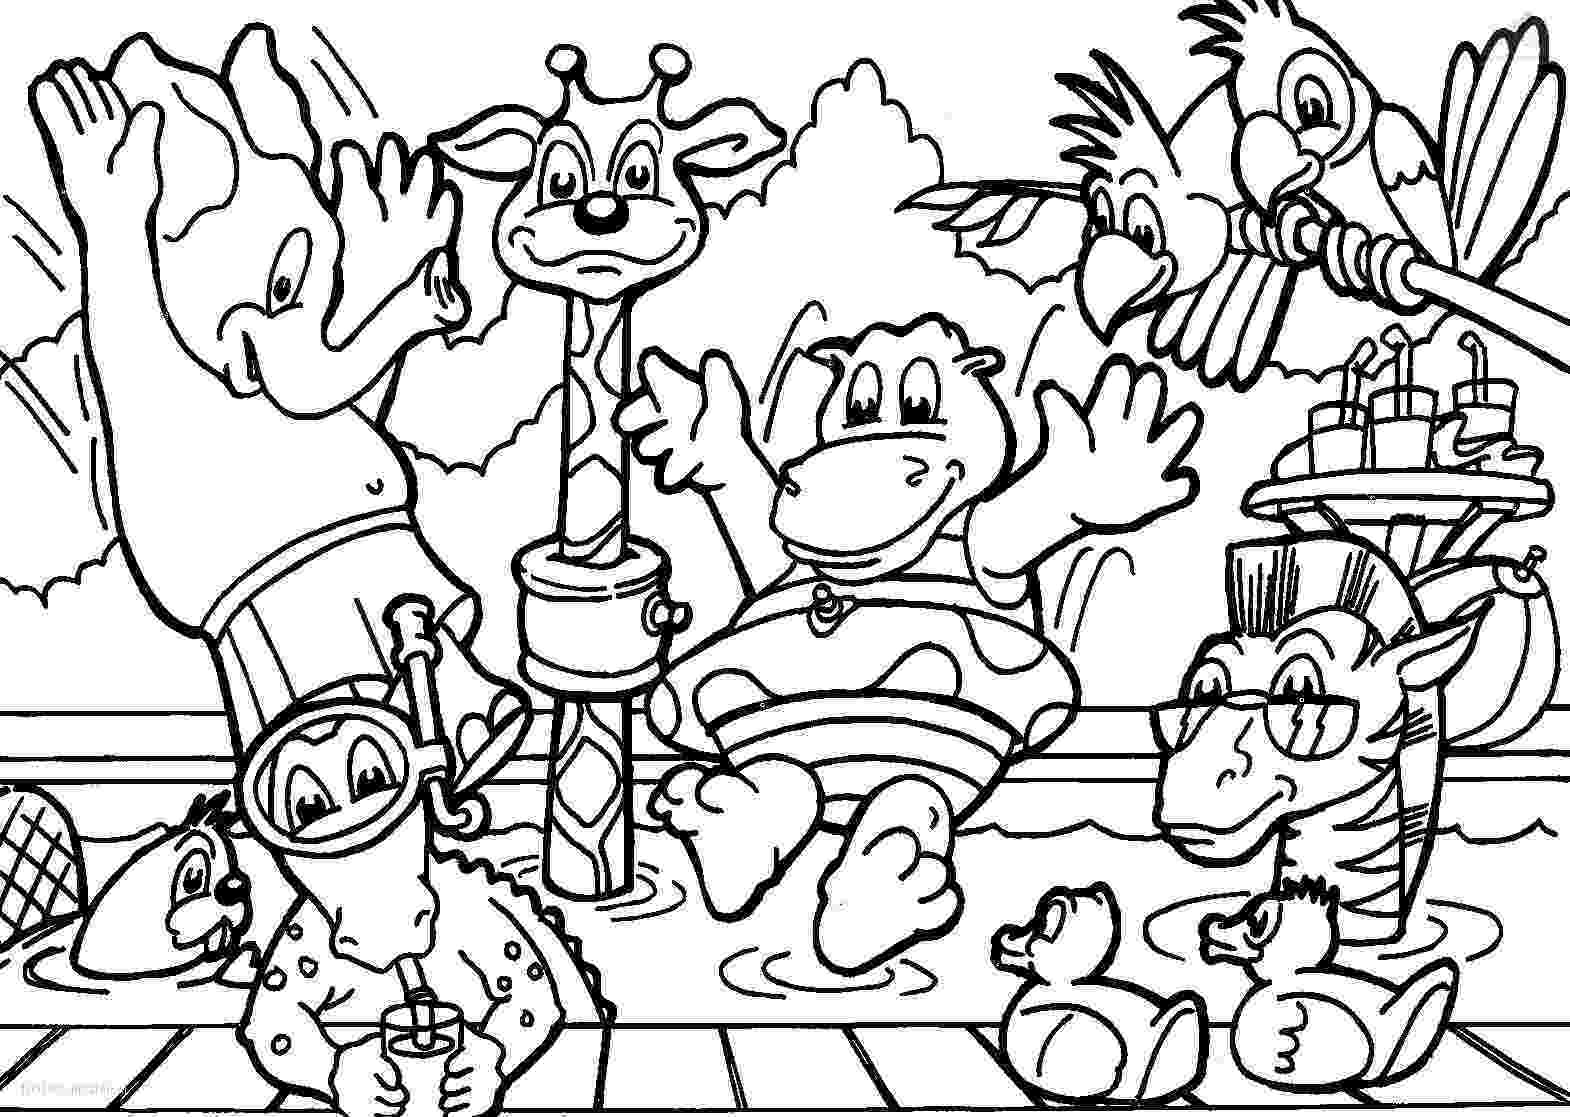 jungle animal coloring book pages the daily art of lemurkat colouring pages jungle book animal coloring pages